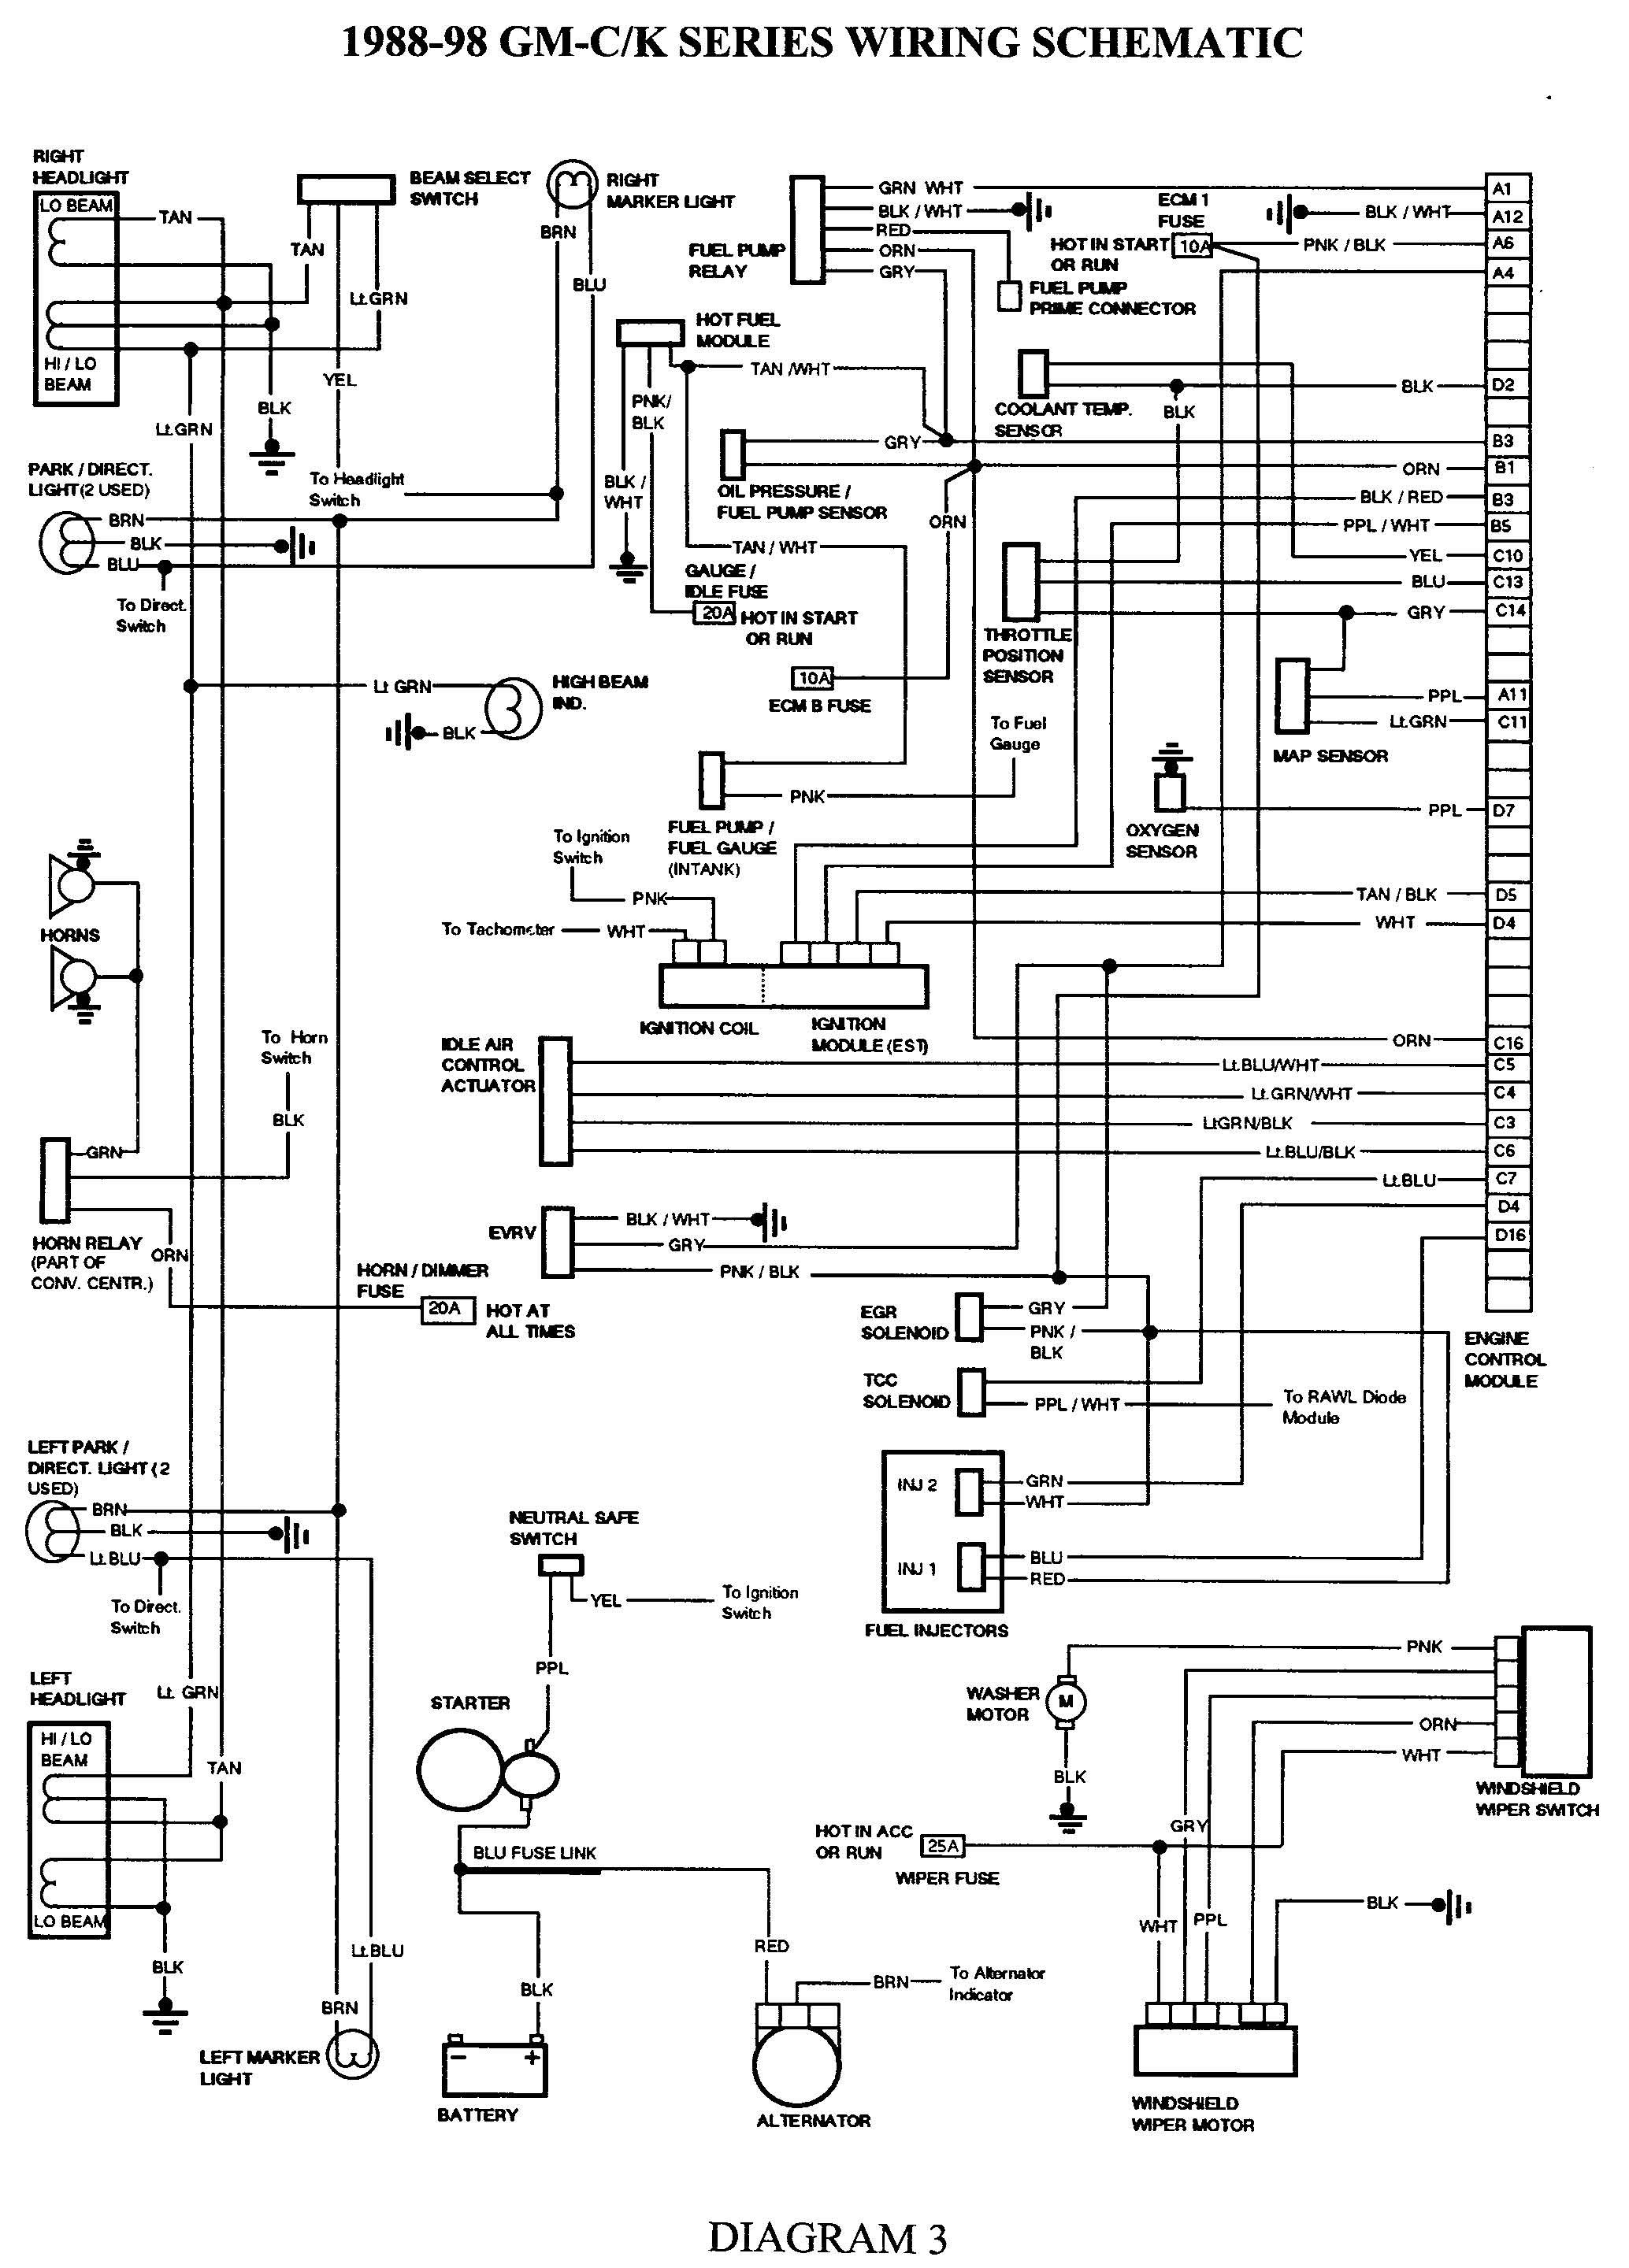 b2f2e5dbdc07dada83ef514f6d4ce3d4 gmc truck wiring diagrams on gm wiring harness diagram 88 98 kc 1965 C10 Wiring-Diagram at fashall.co